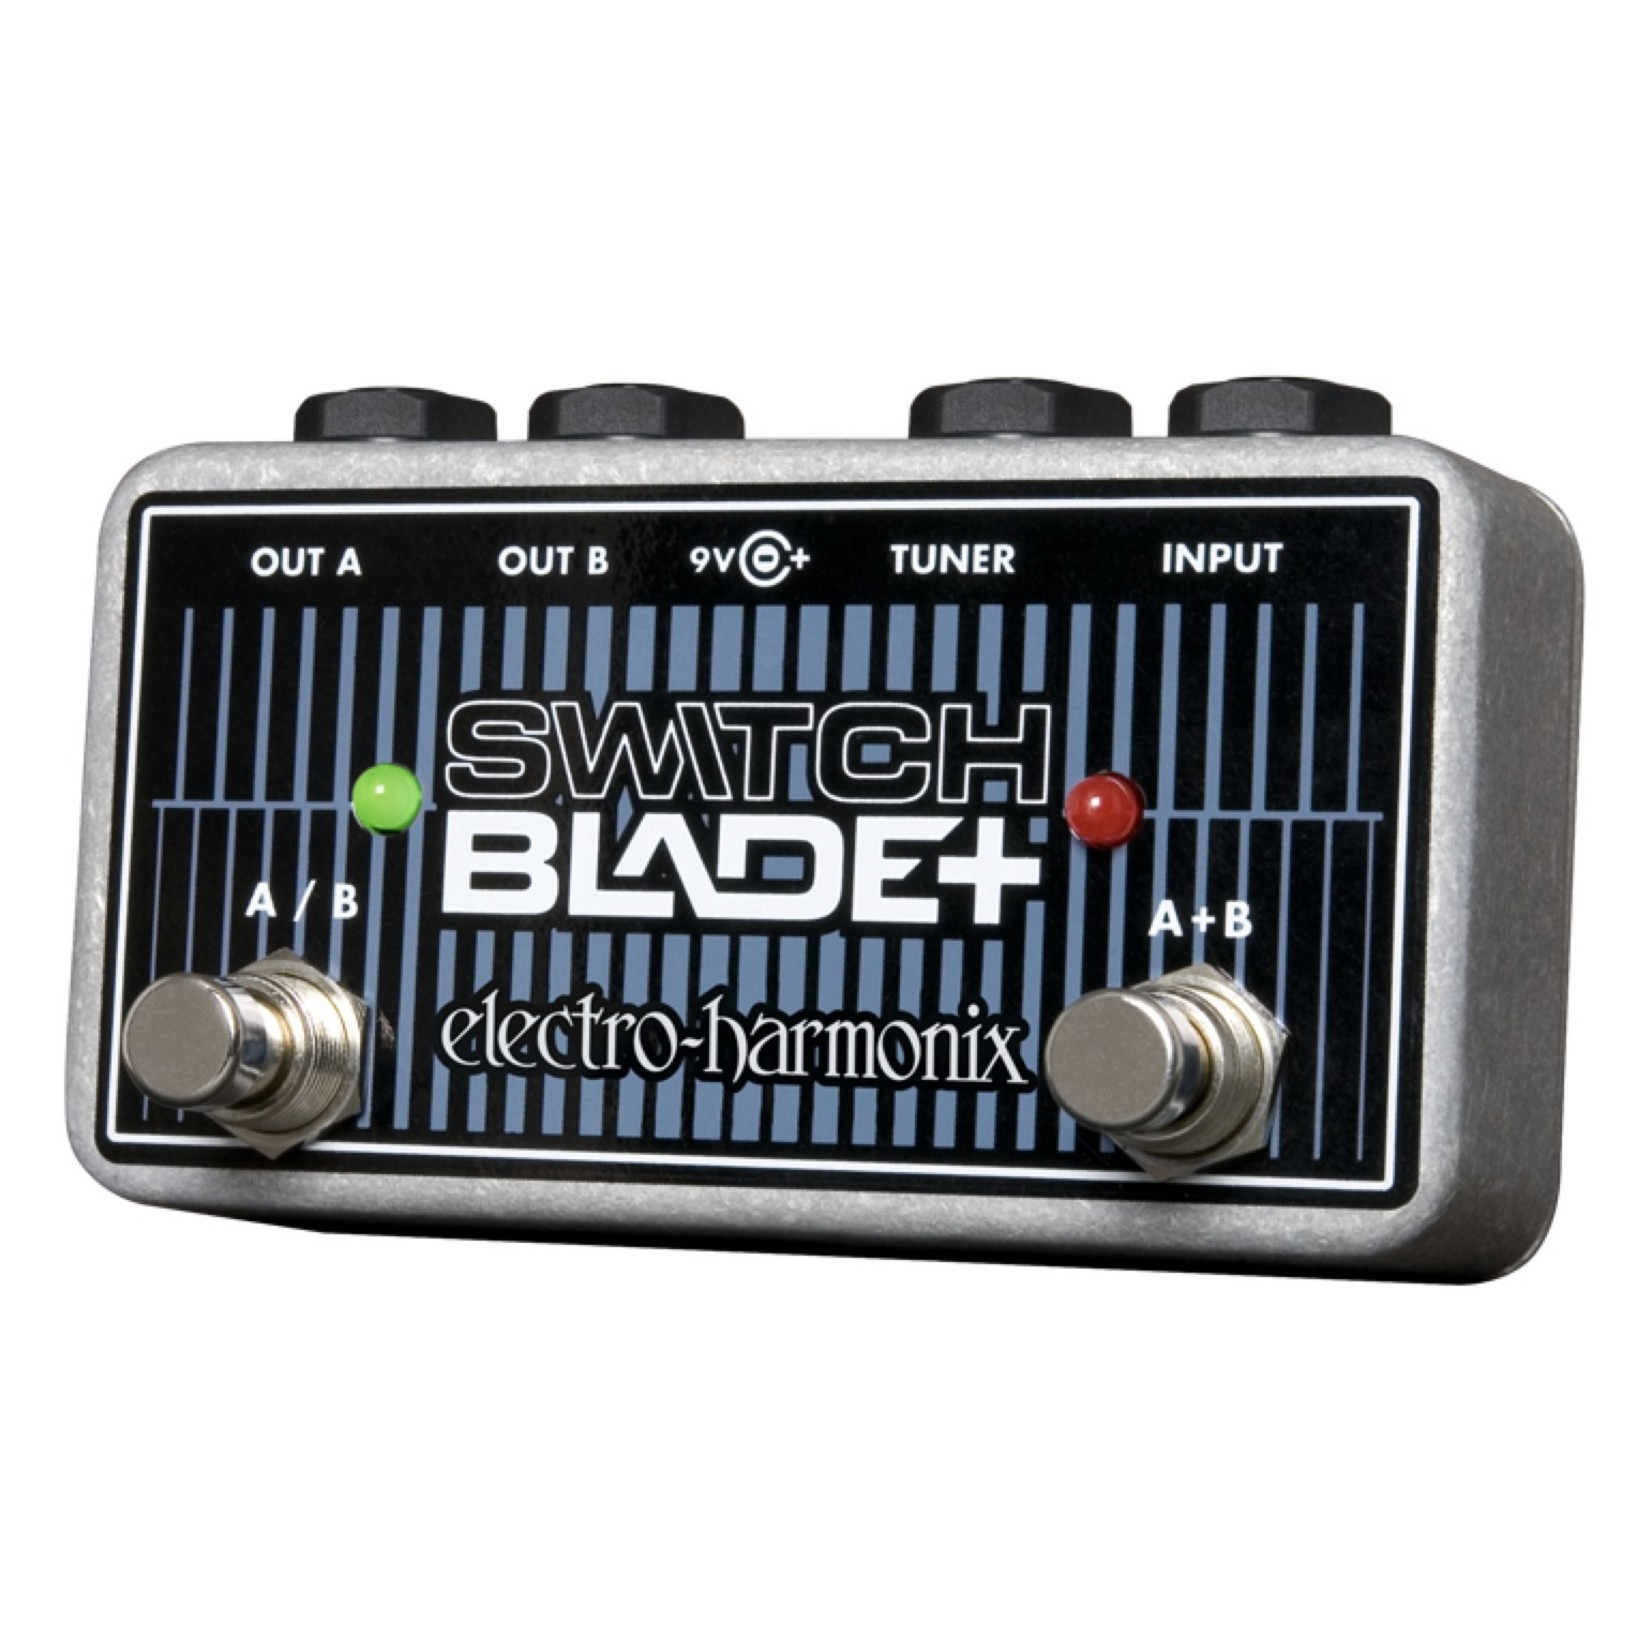 Electro-Harmonix Electro-Harmonix Switchblade+ Channel Selector (A/B or A+B Switcher)